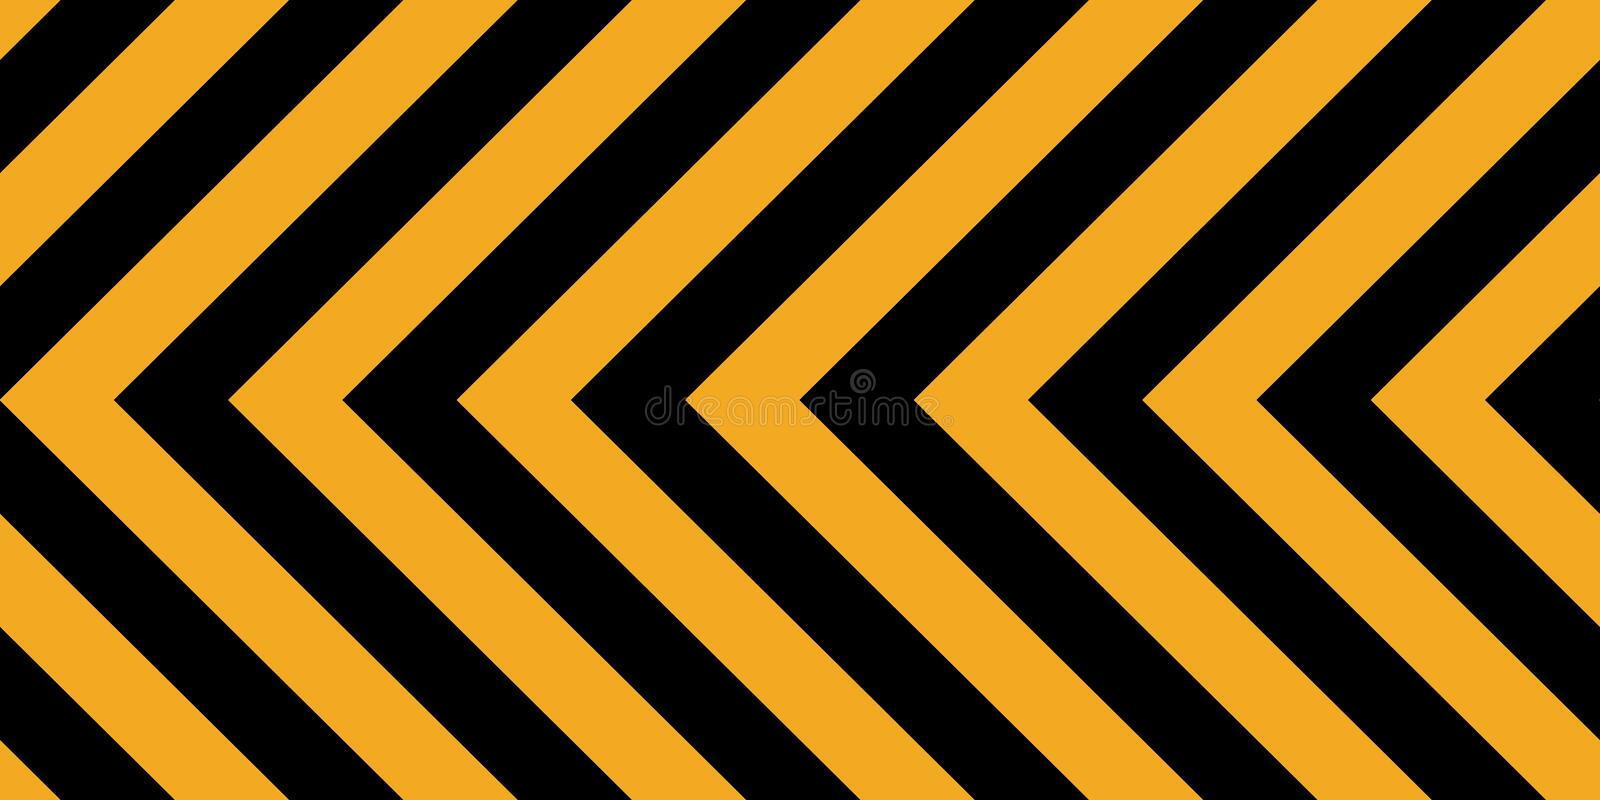 Background yellow black stripes, industrial sign safety stripe warning, vector background warn caution construction stock illustration